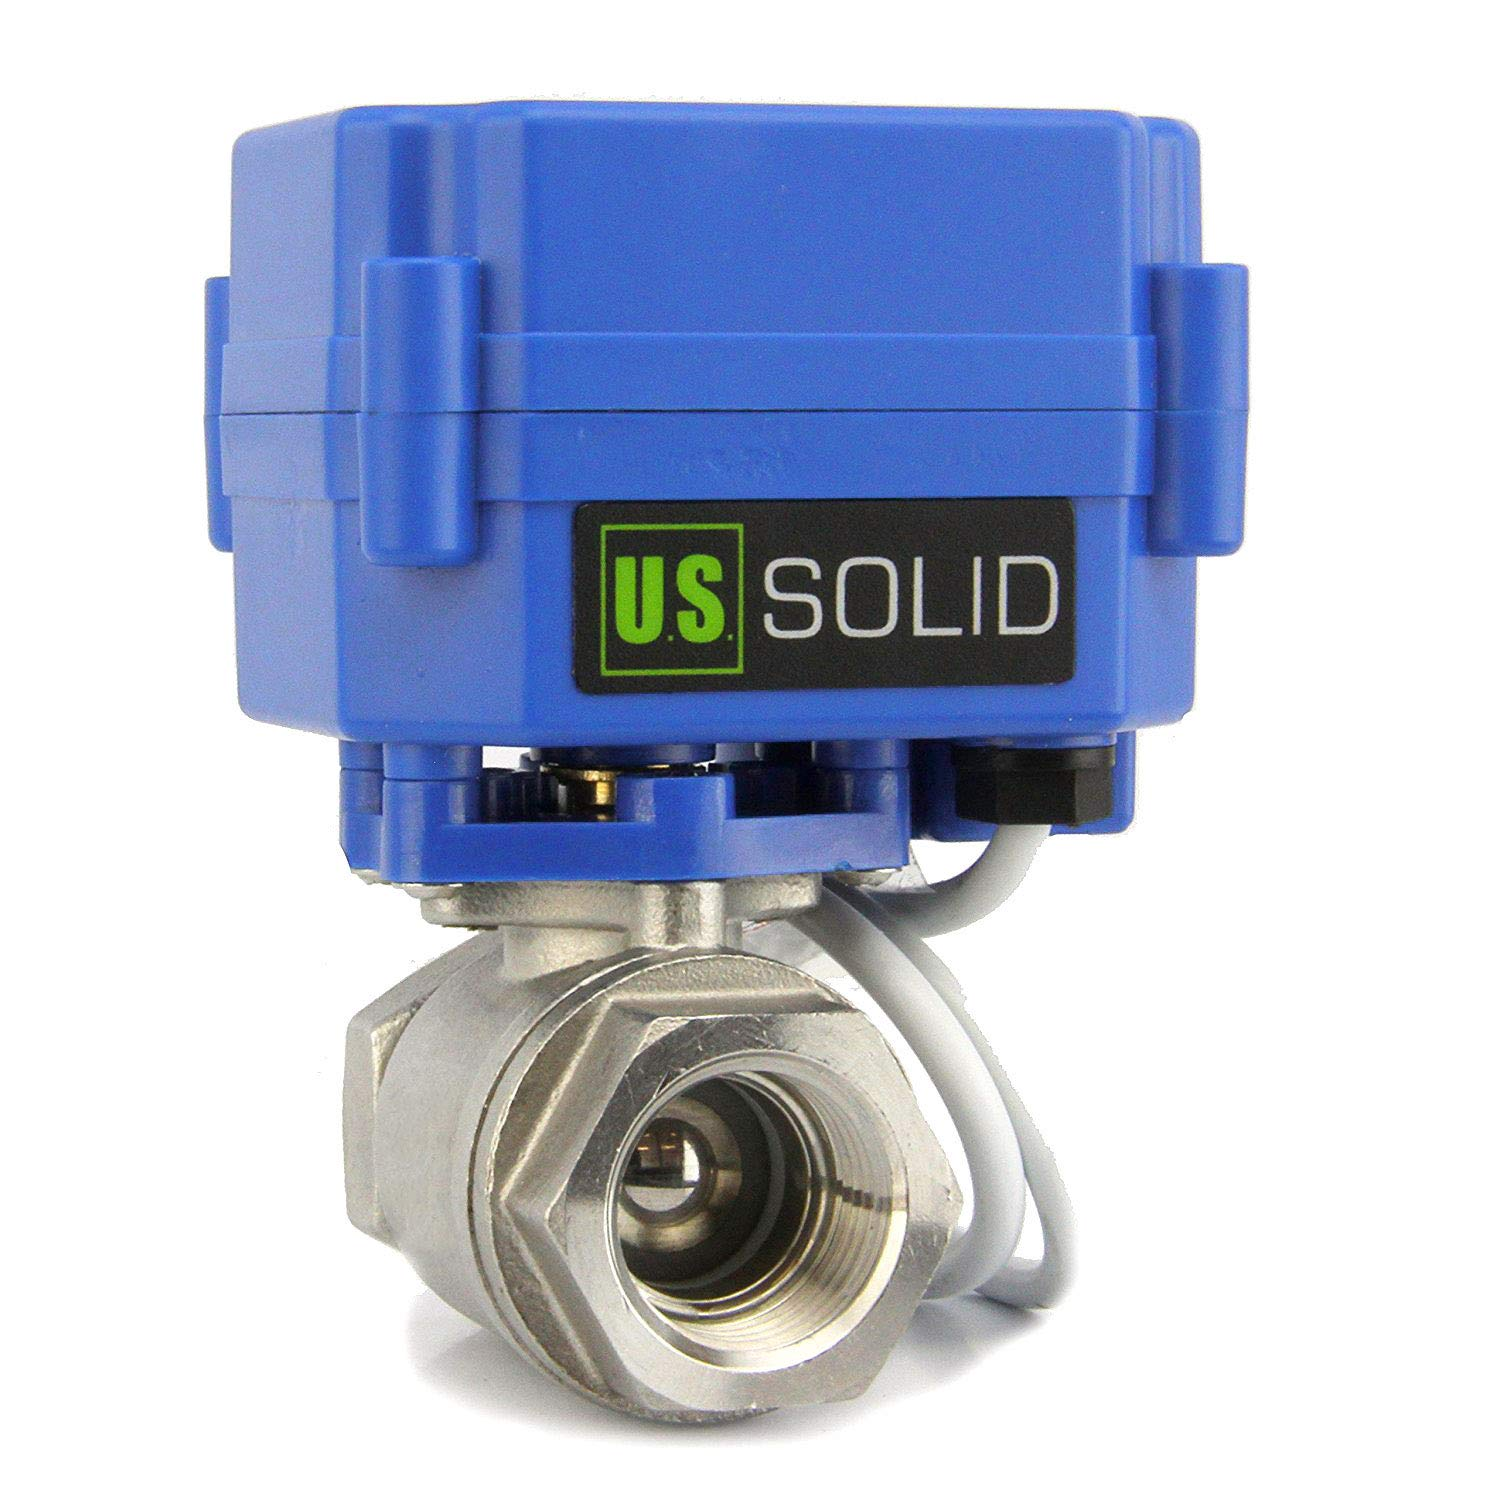 Motorized Ball Valve- 3/4'' Stainless Steel Ball Valve with Full Port, 9-24V DC and 2 Wire Reverse Polarity by U.S. Solid